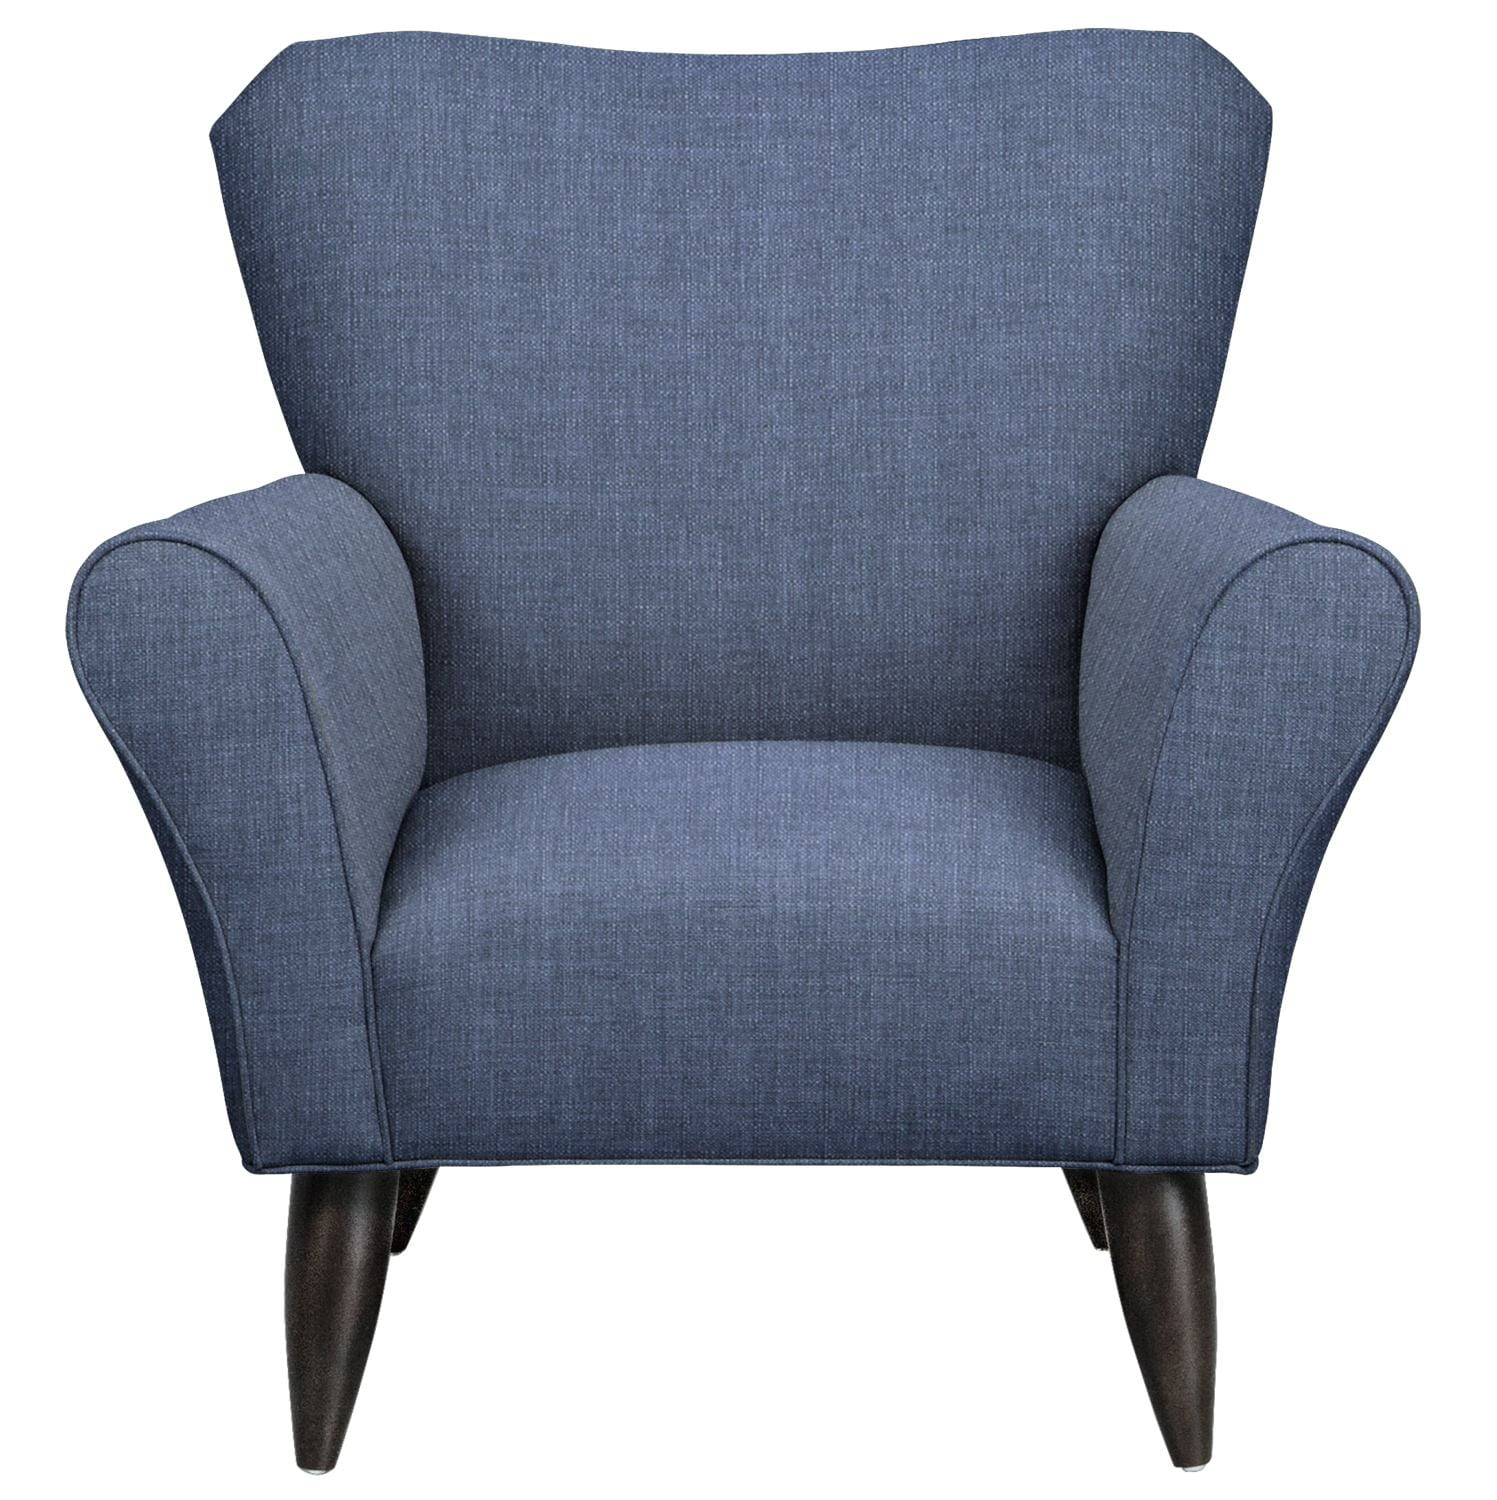 Living Room Furniture - Jessie Chair w/ Depalma Ink Fabric